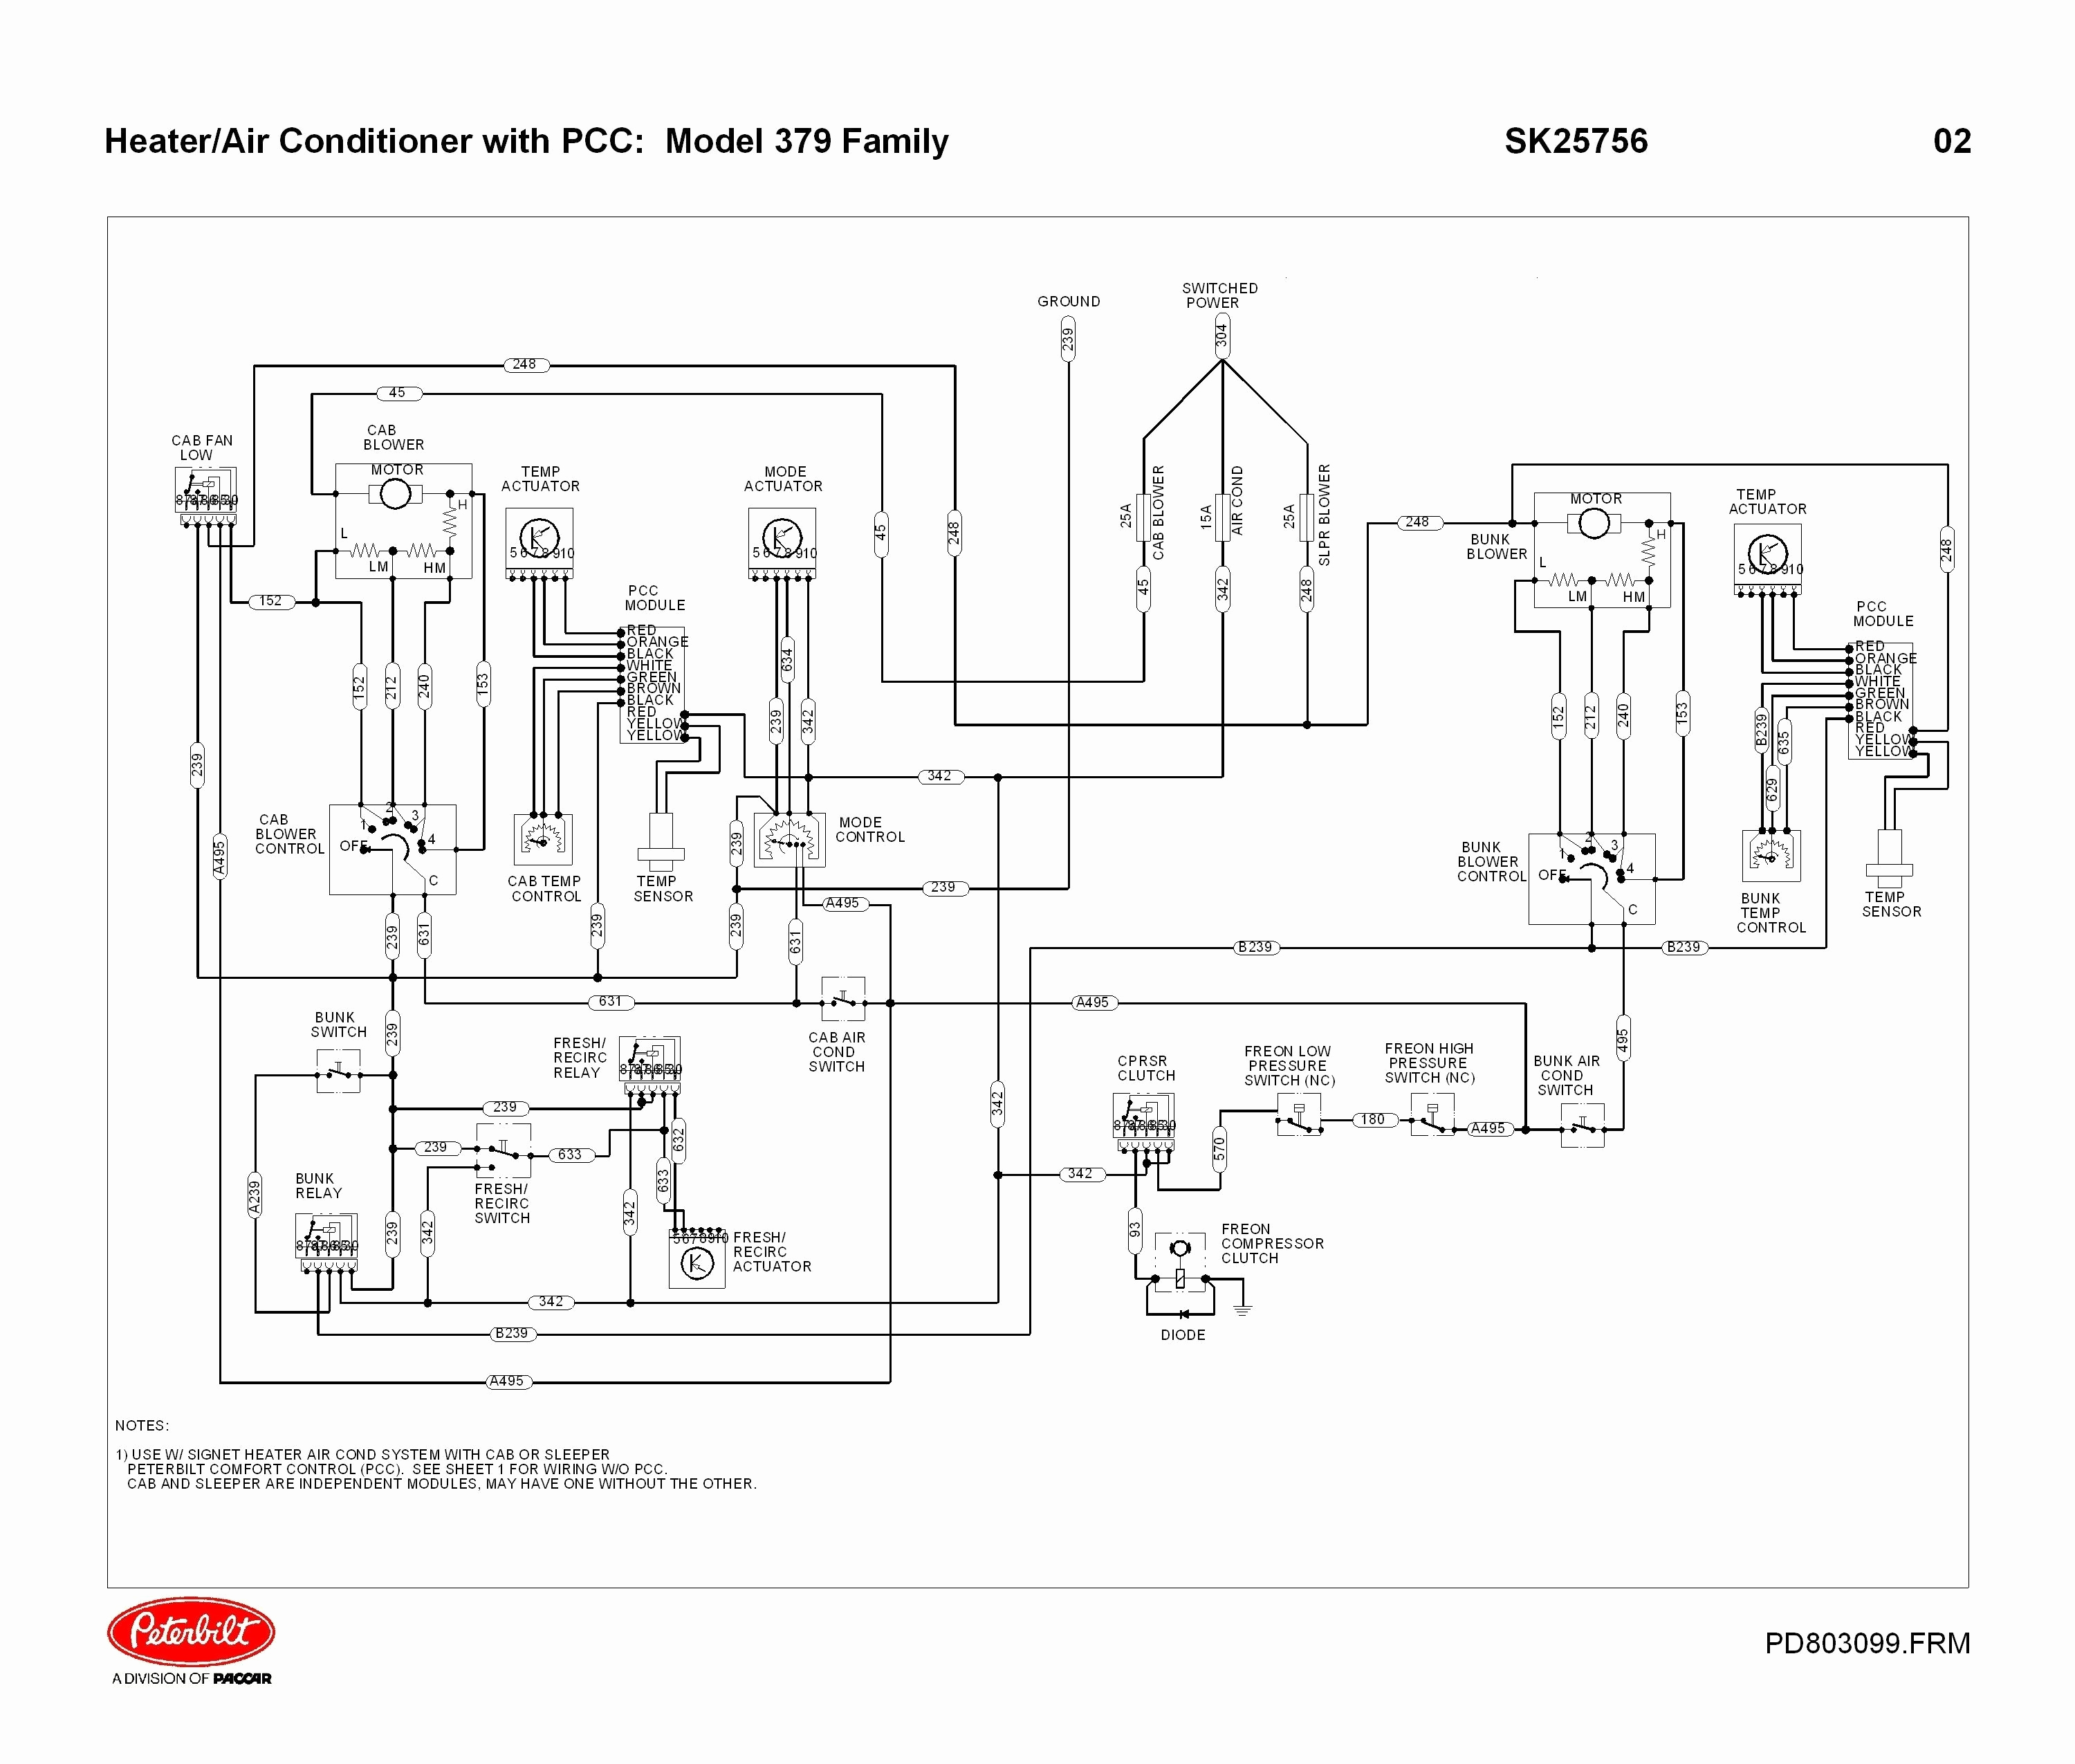 peterbilt 330 wiring diagram Collection-2003 387 peterbilt truck wiring schematics wire center u2022 rh boomerneur co 2001 peterbilt 379 headlight wiring diagram 2001 peterbilt 330 wiring diagram 6-r